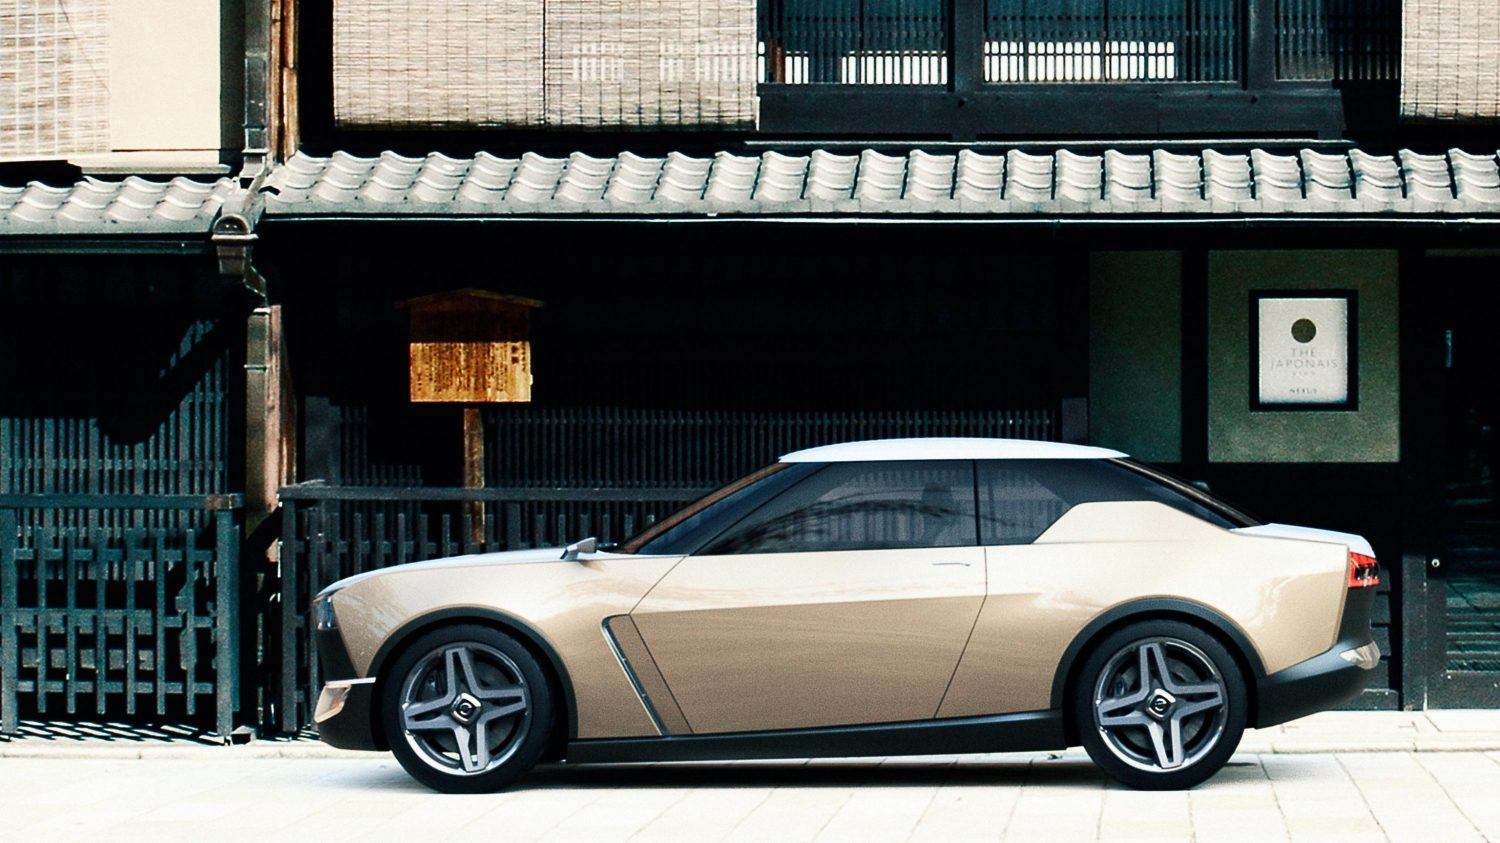 Nissan IDX Freeflow Concept profile city storefront in Japan